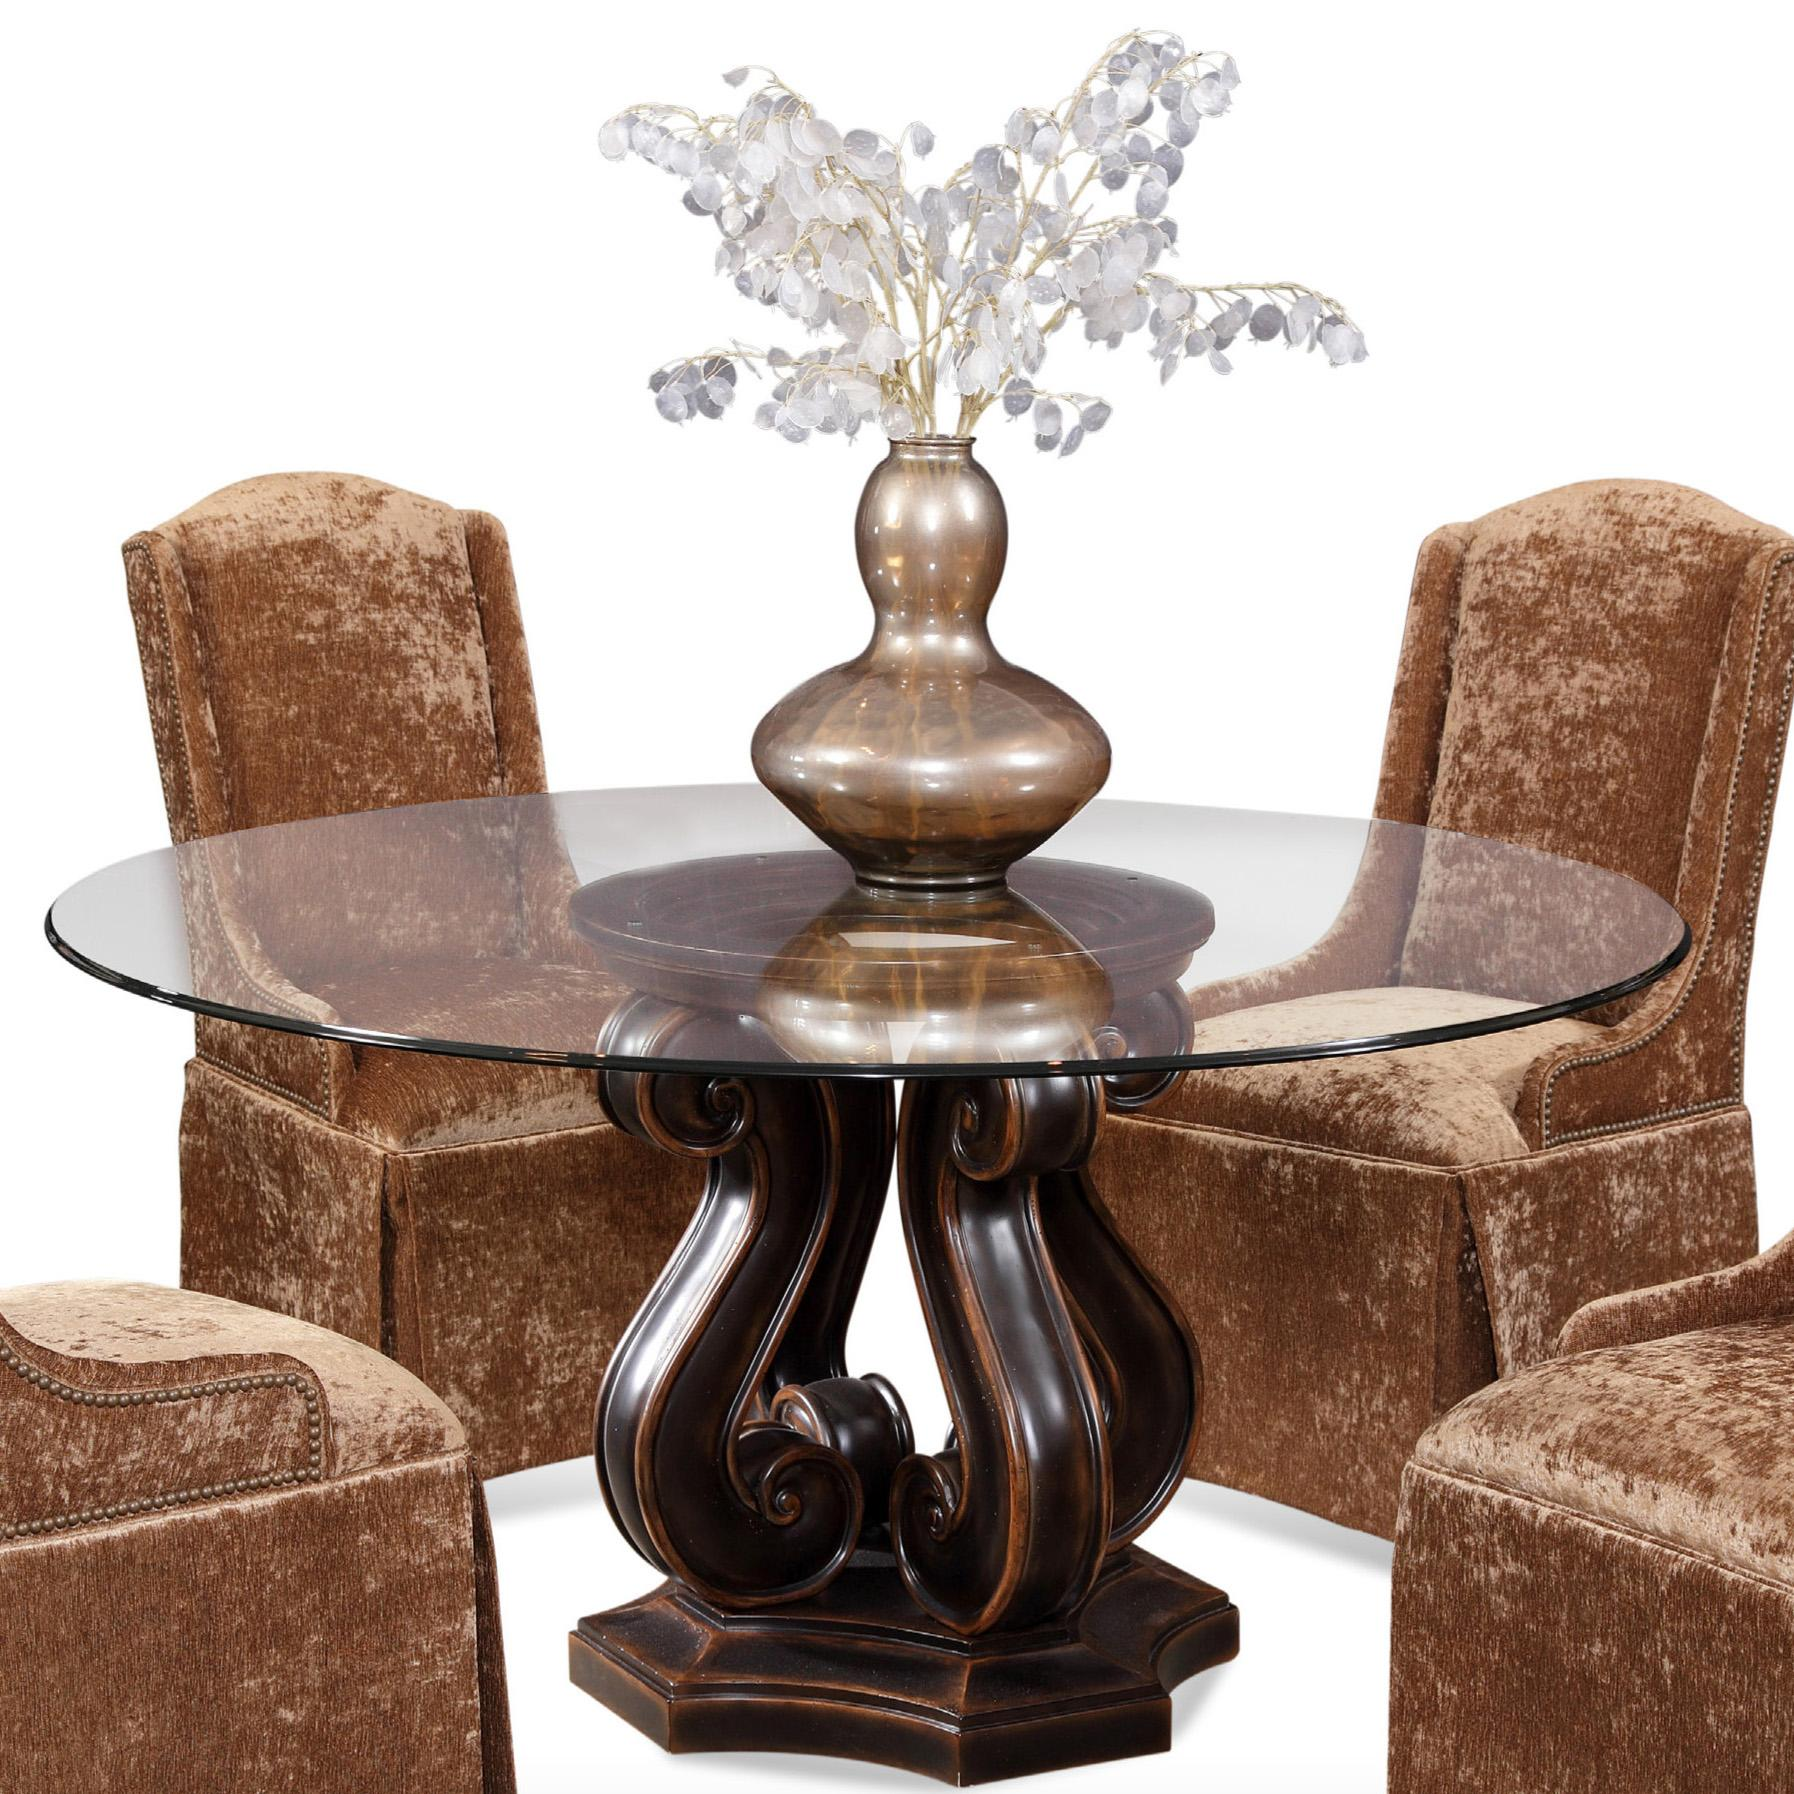 Tudor Pedestal Base Table With Round Glass Top By CMI Wolf And Gardiner Wol